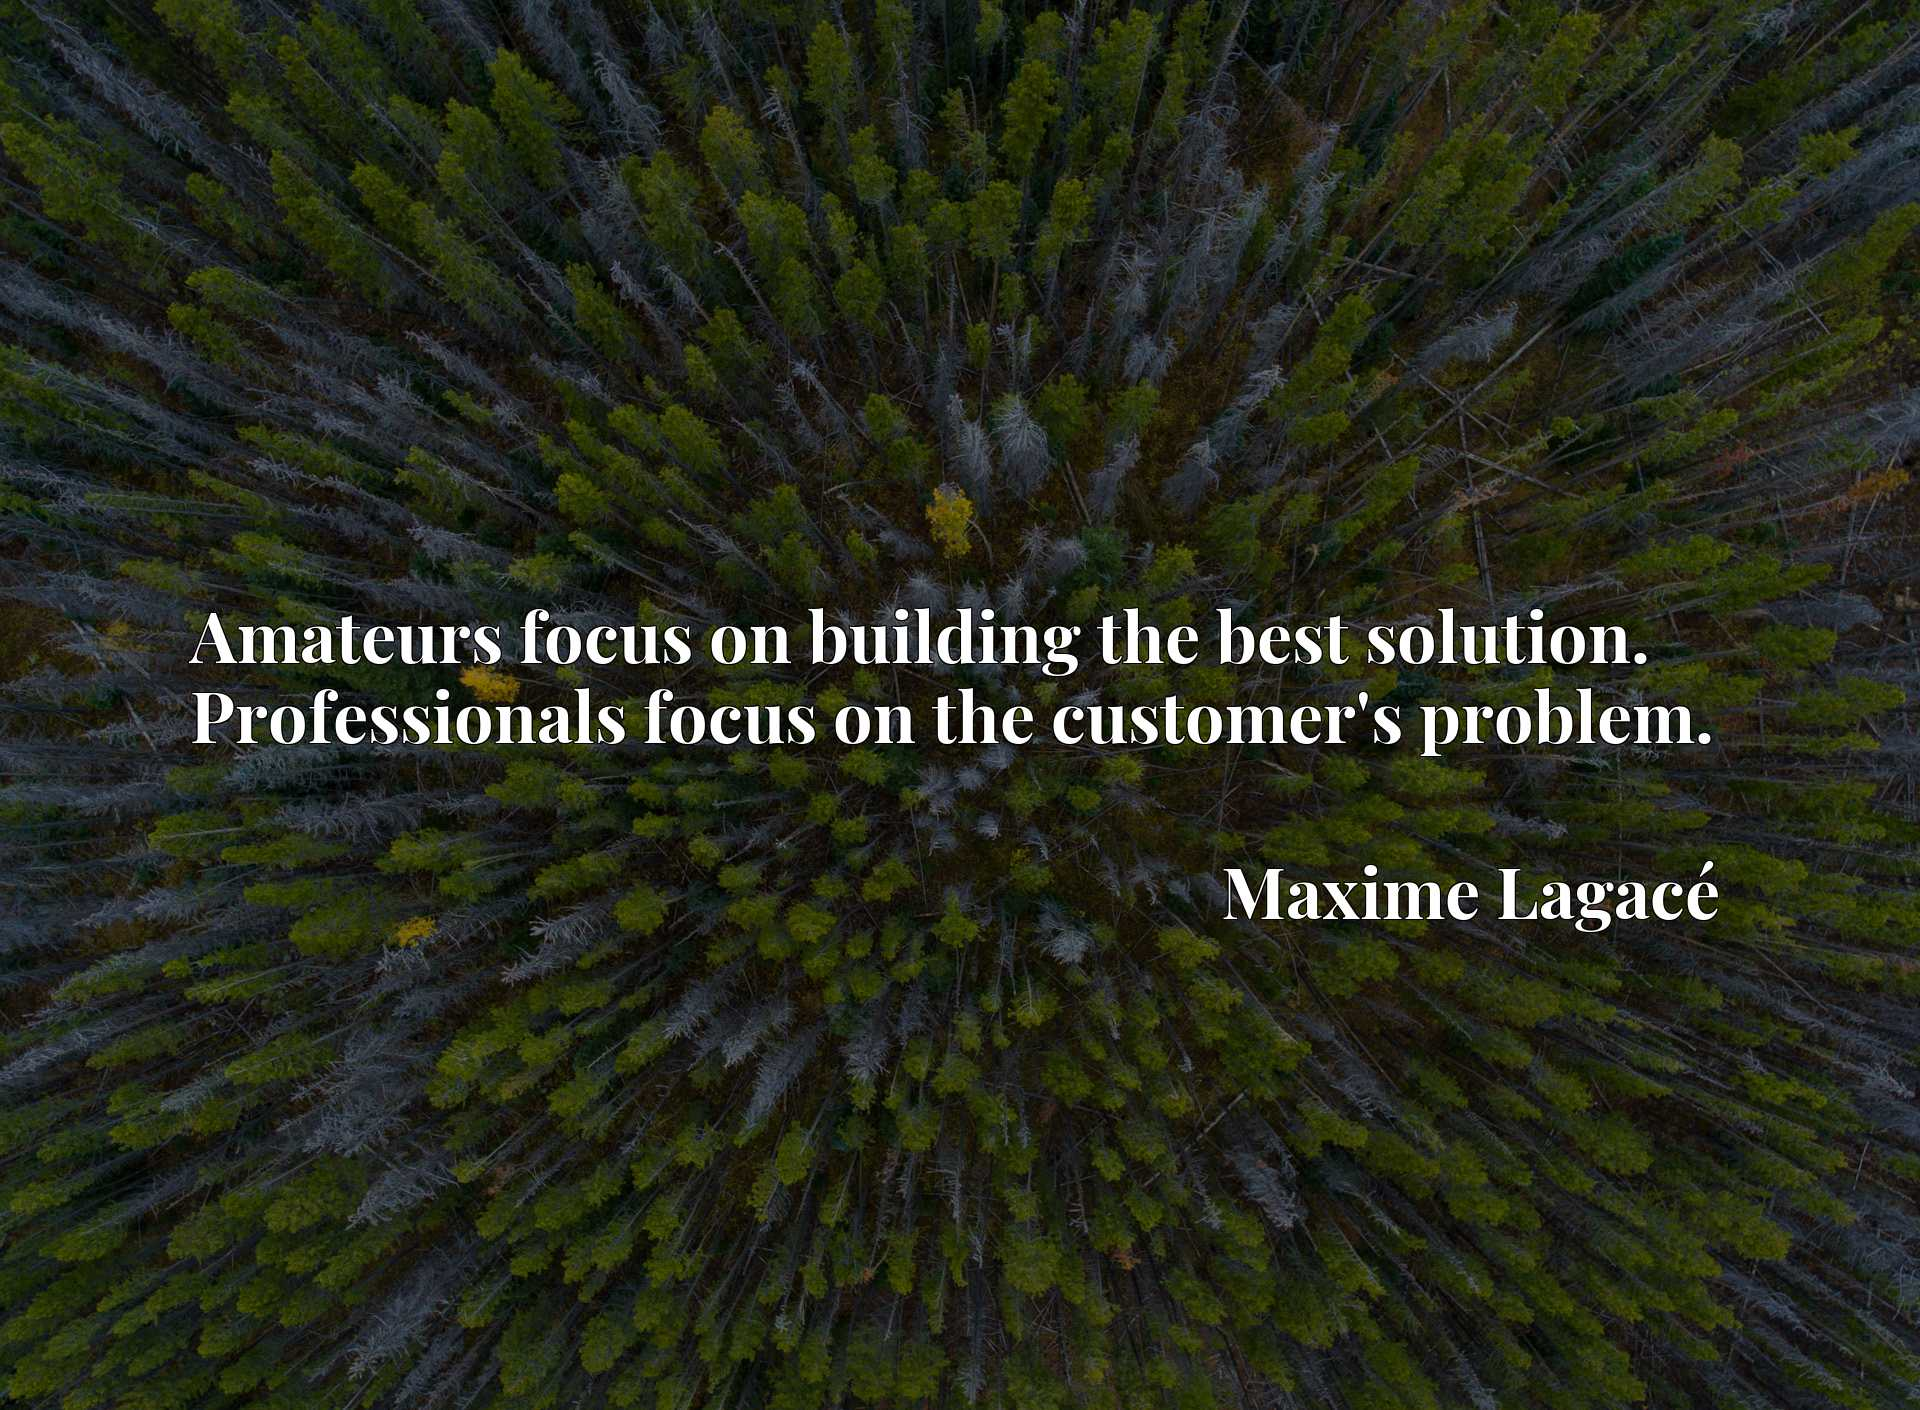 Amateurs focus on building the best solution. Professionals focus on the customer's problem.